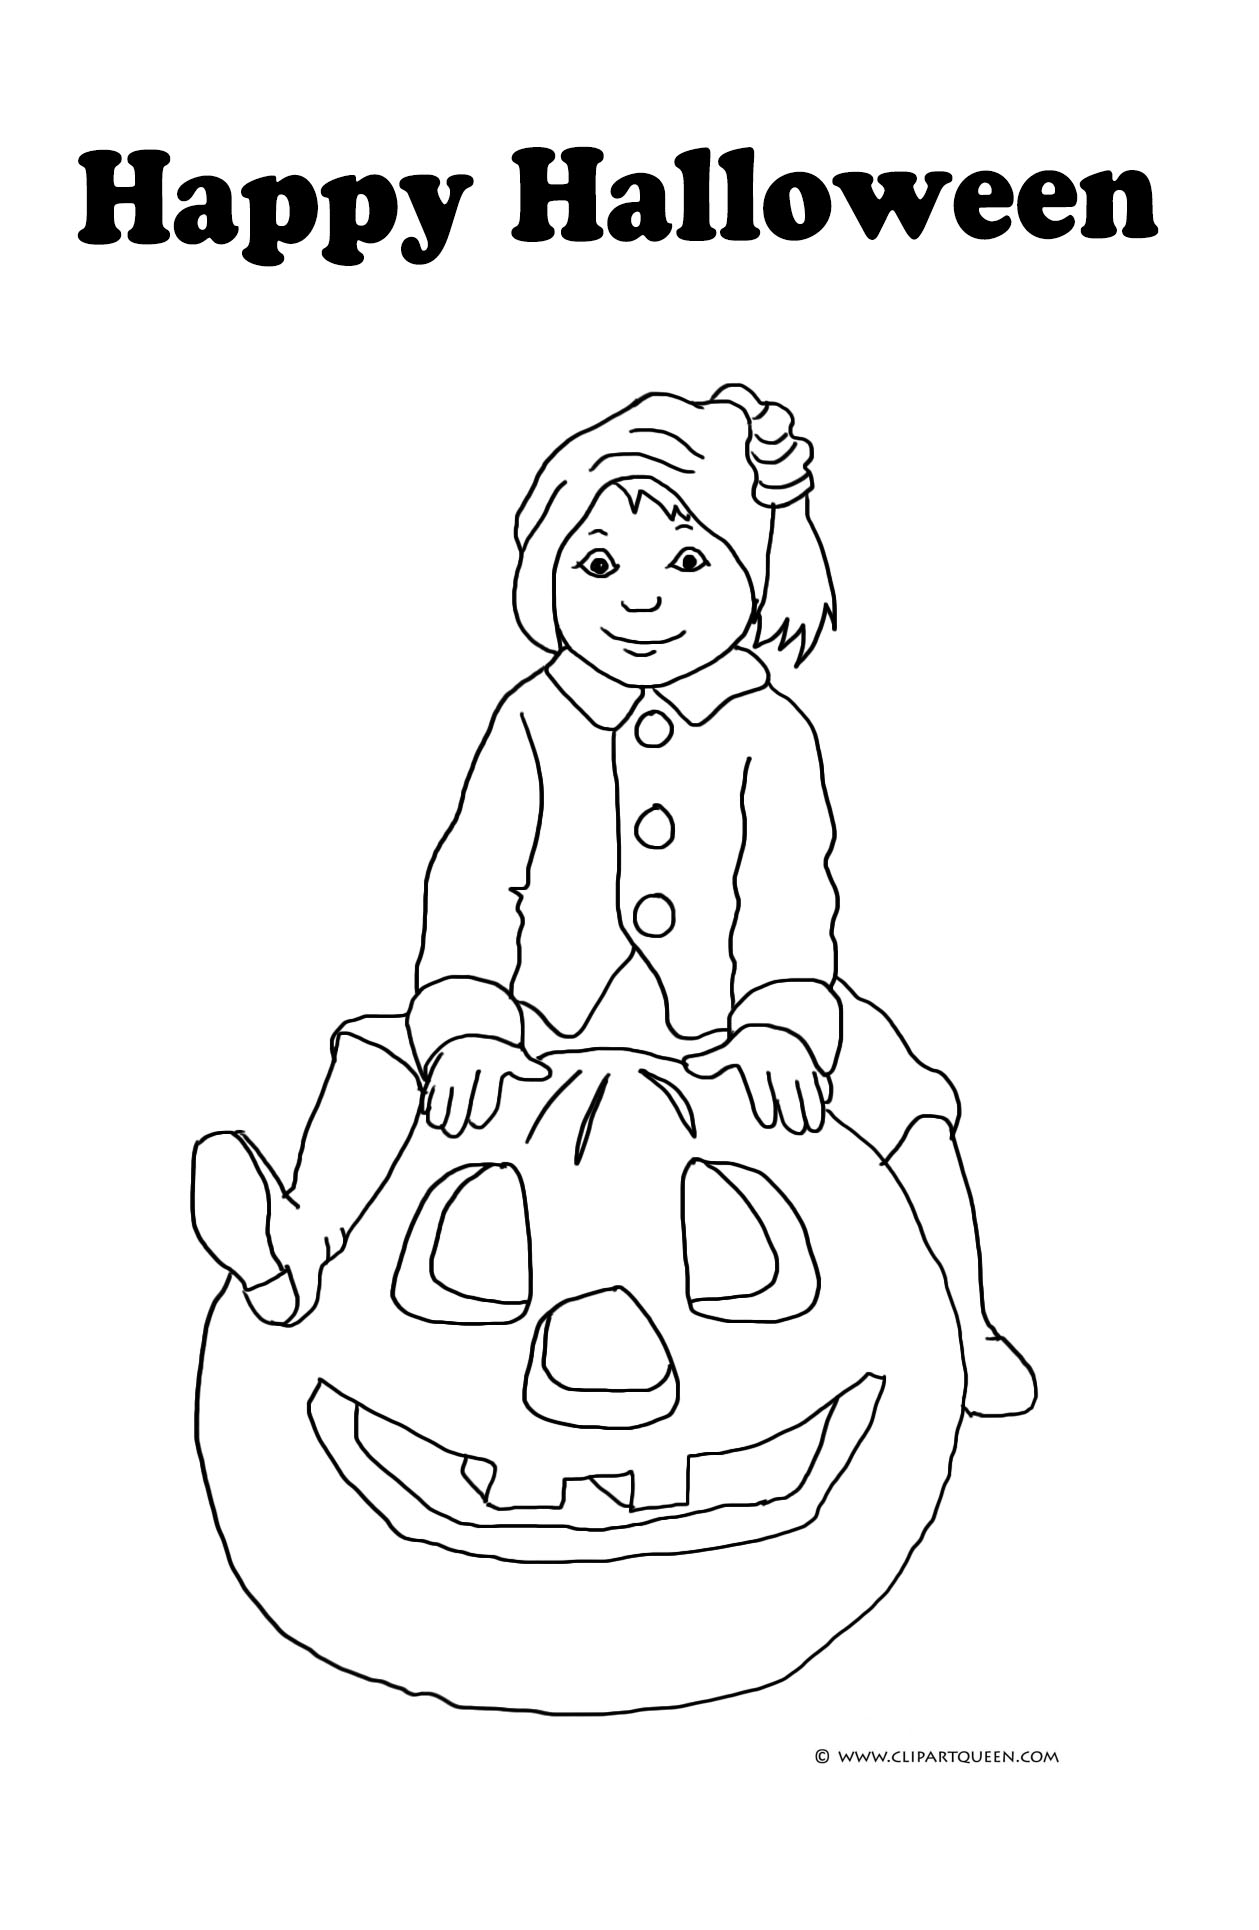 coloring halloween card halloween colorings halloween card coloring